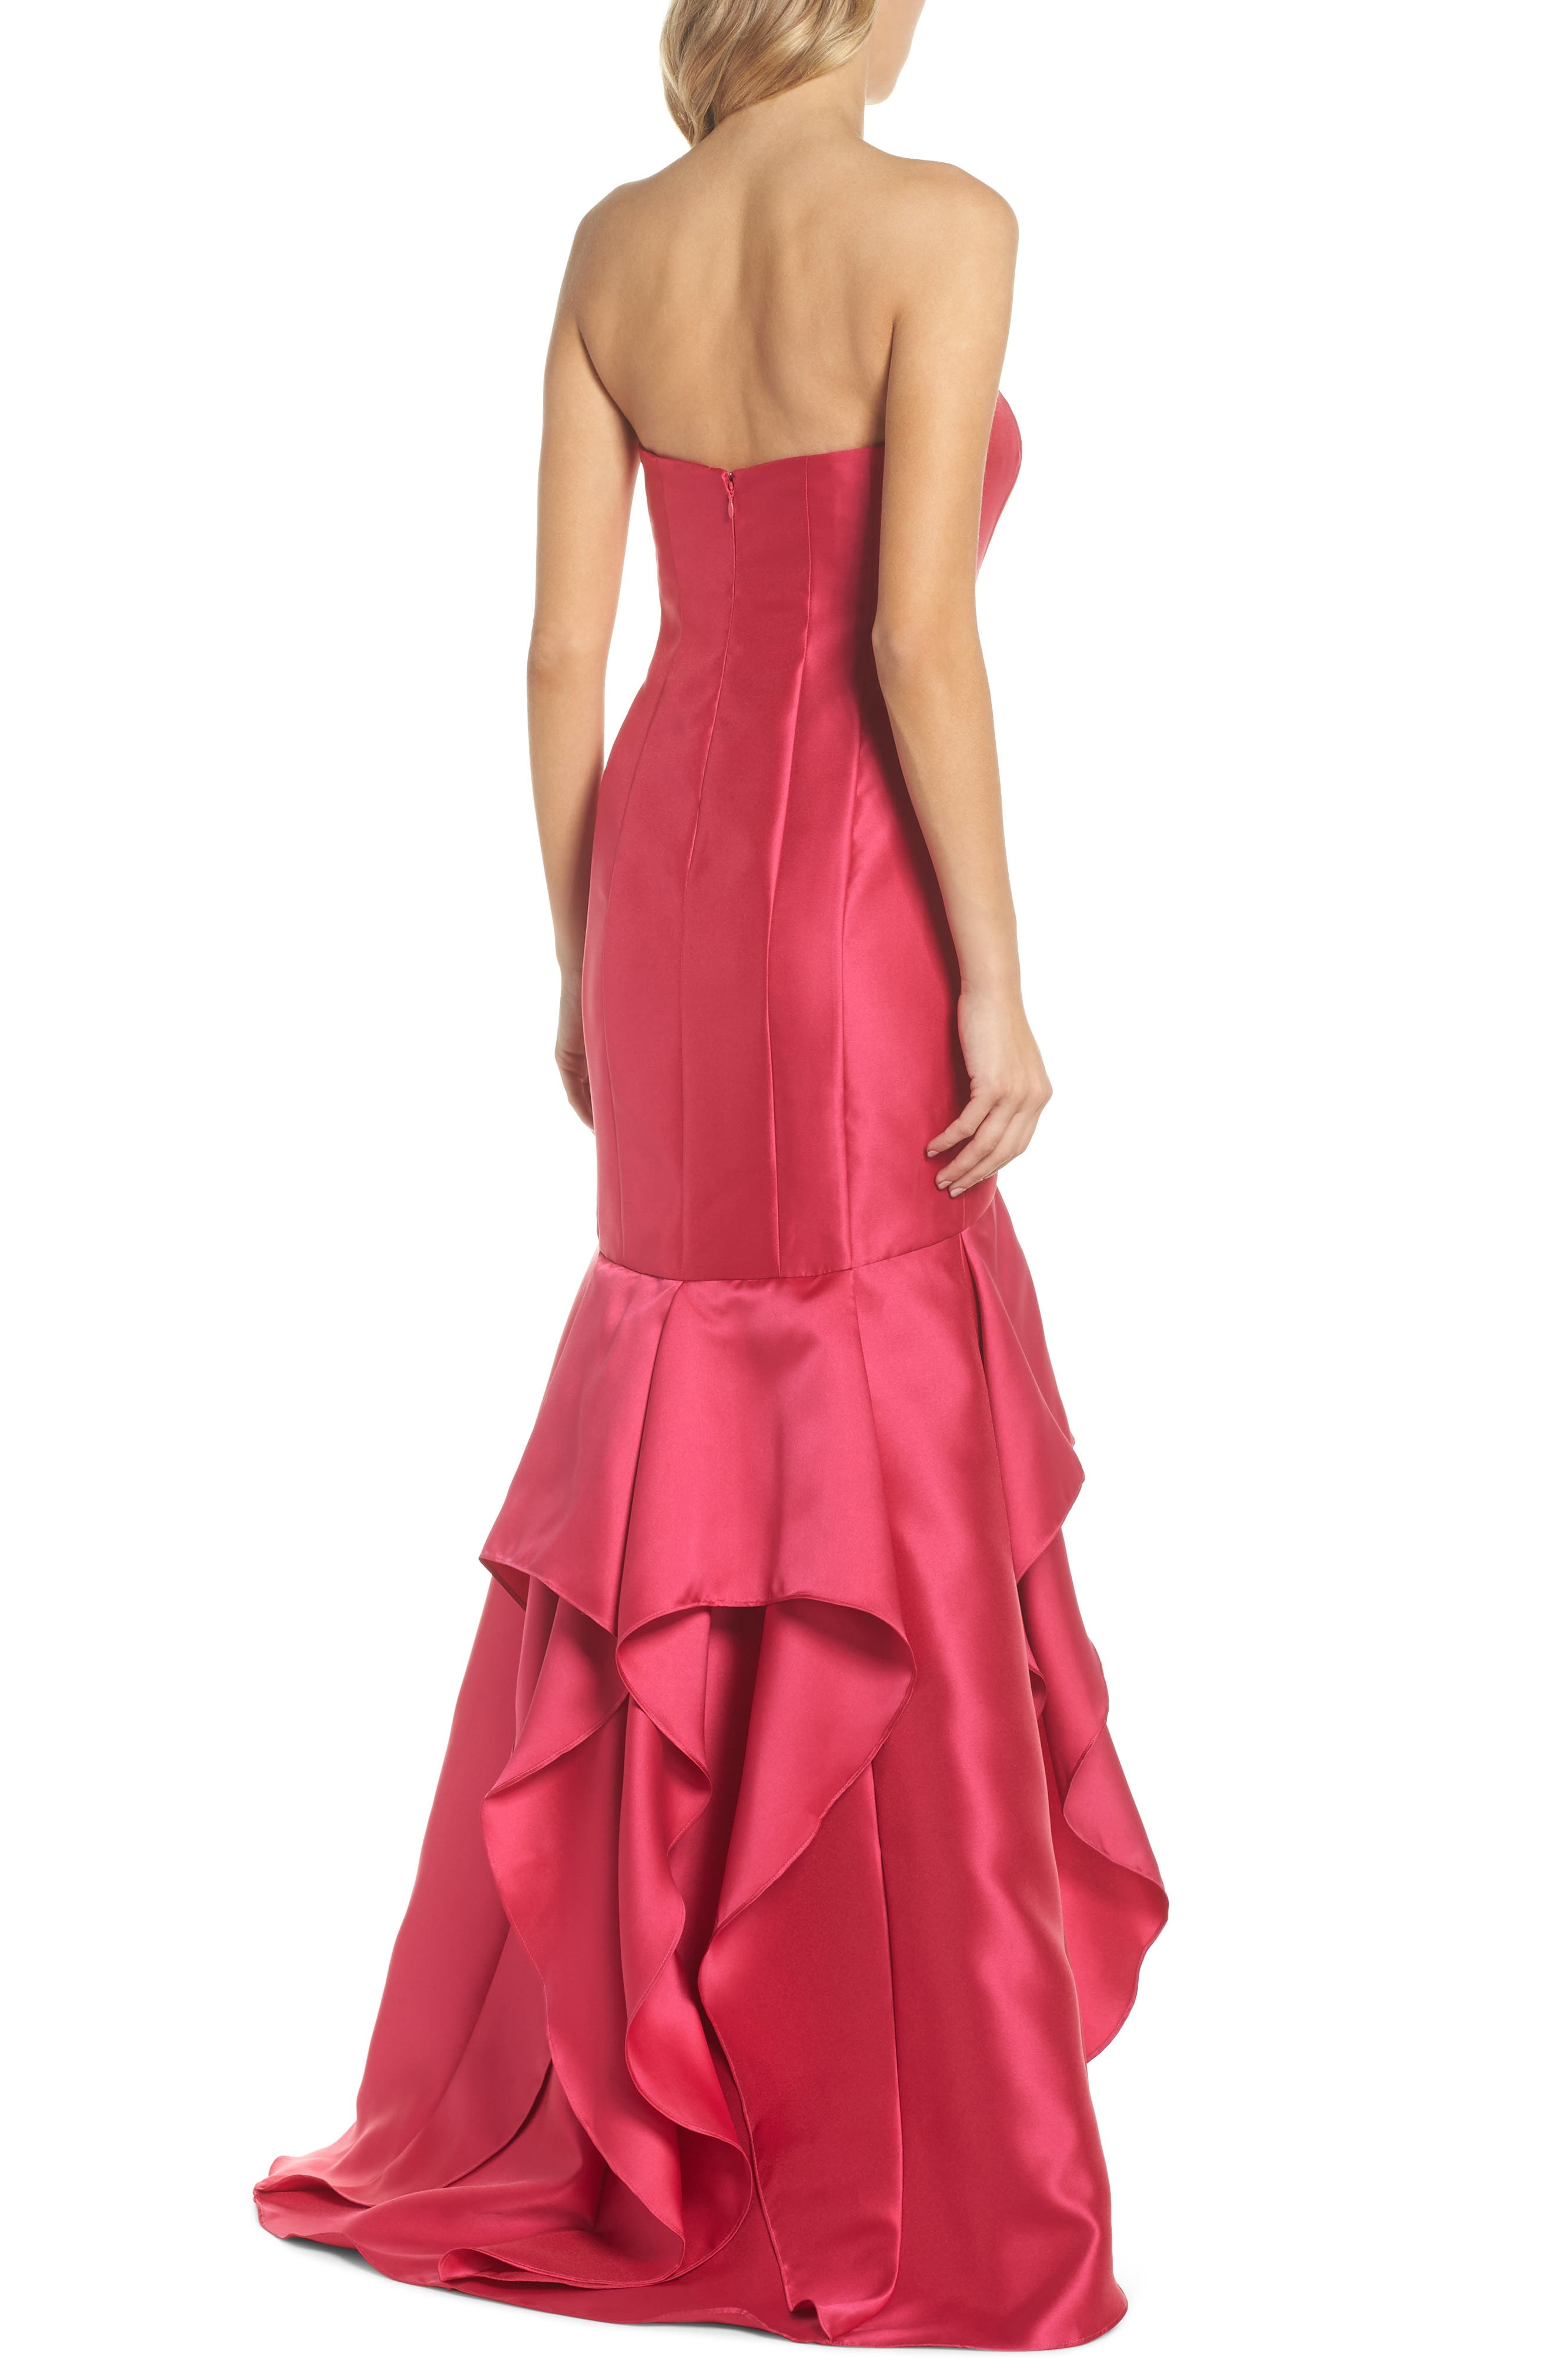 Ball Gown Adrianna Papell Clothing and Shoes | Nordstrom